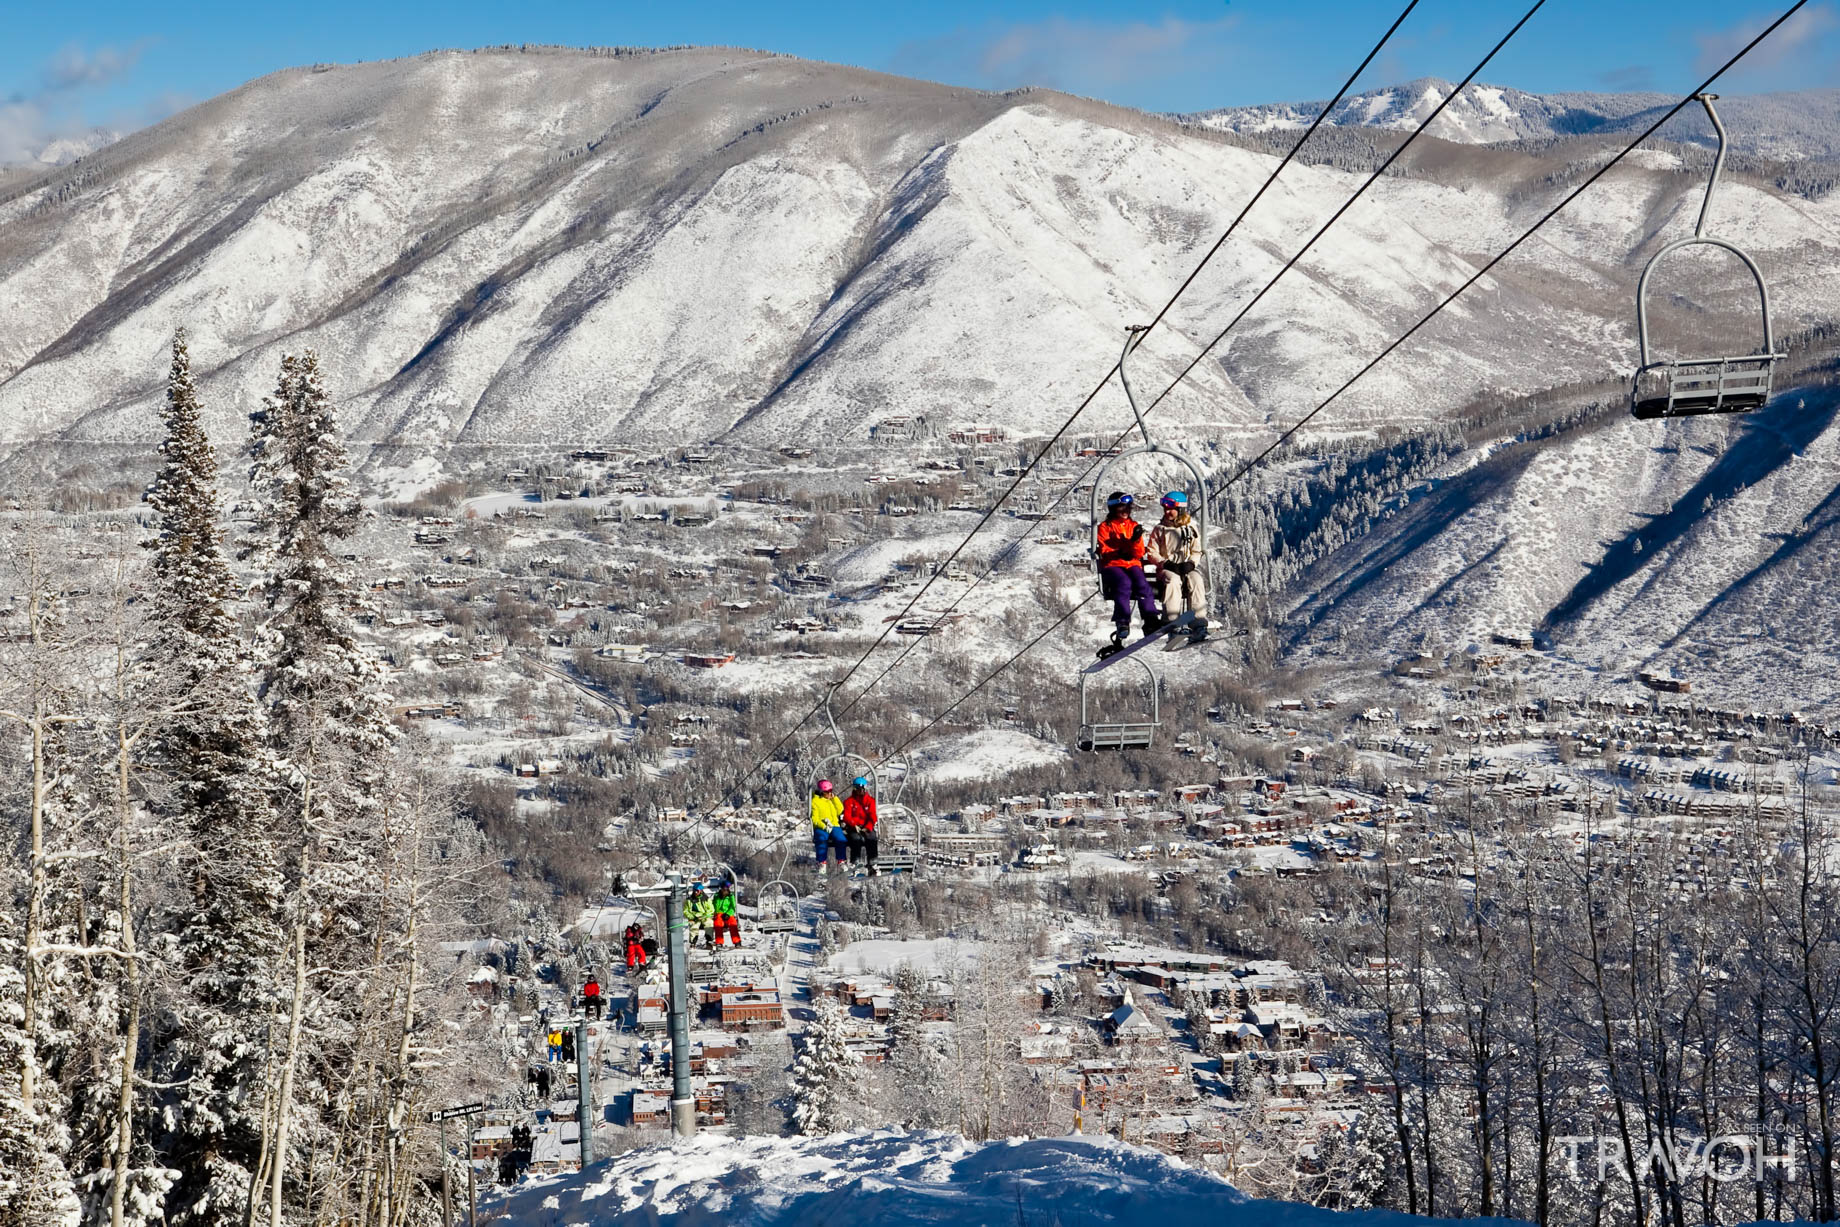 Skiing – Top 7 Reasons Why You Should Vacation in Aspen, Colorado